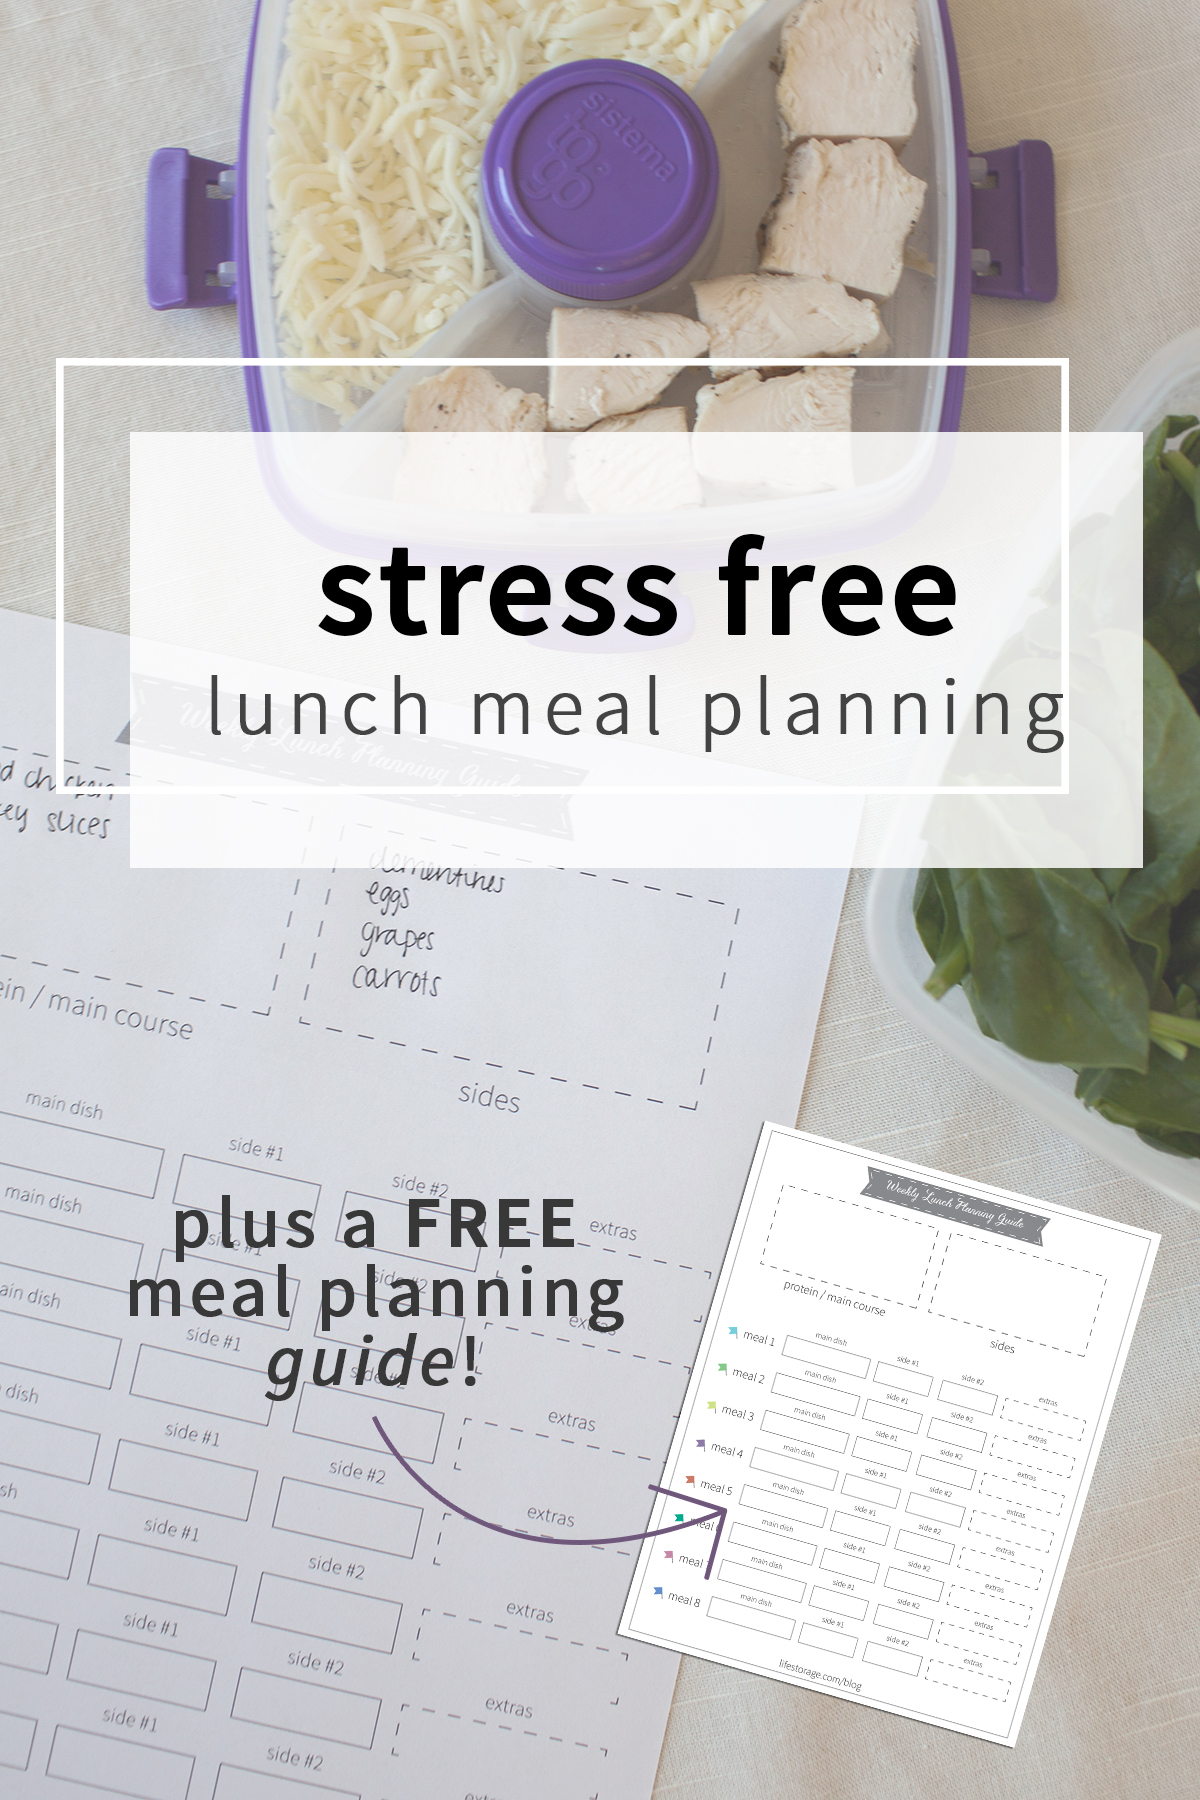 These easy lunch ideas make meal planning stress free! Plus get a meal planning guide to plan our lunches for the week.